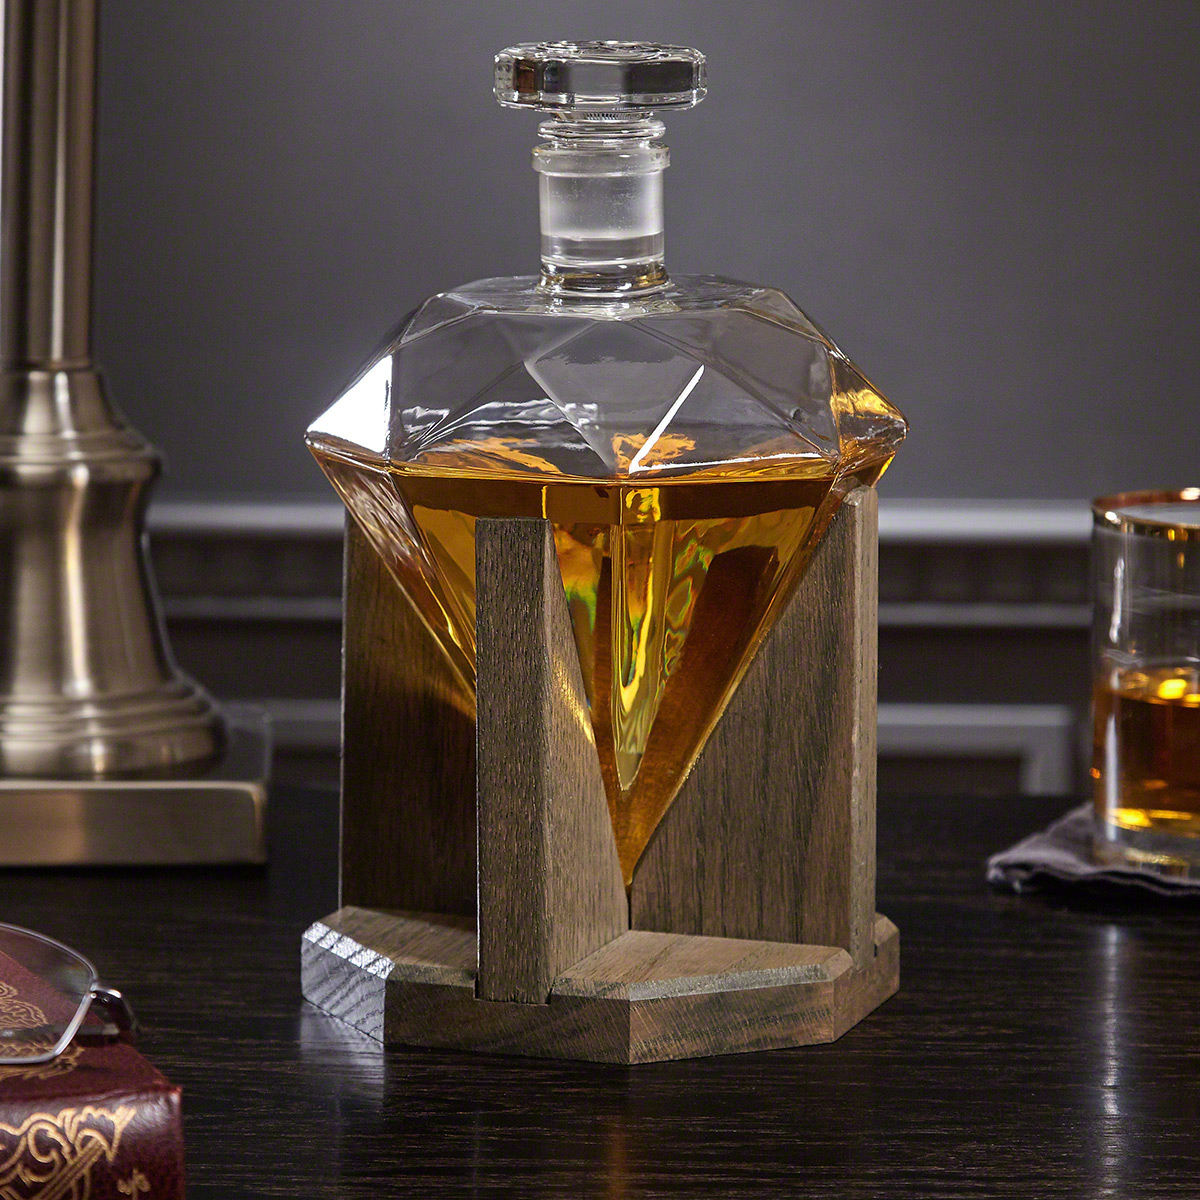 diamond whiskey decanter. Black Bedroom Furniture Sets. Home Design Ideas